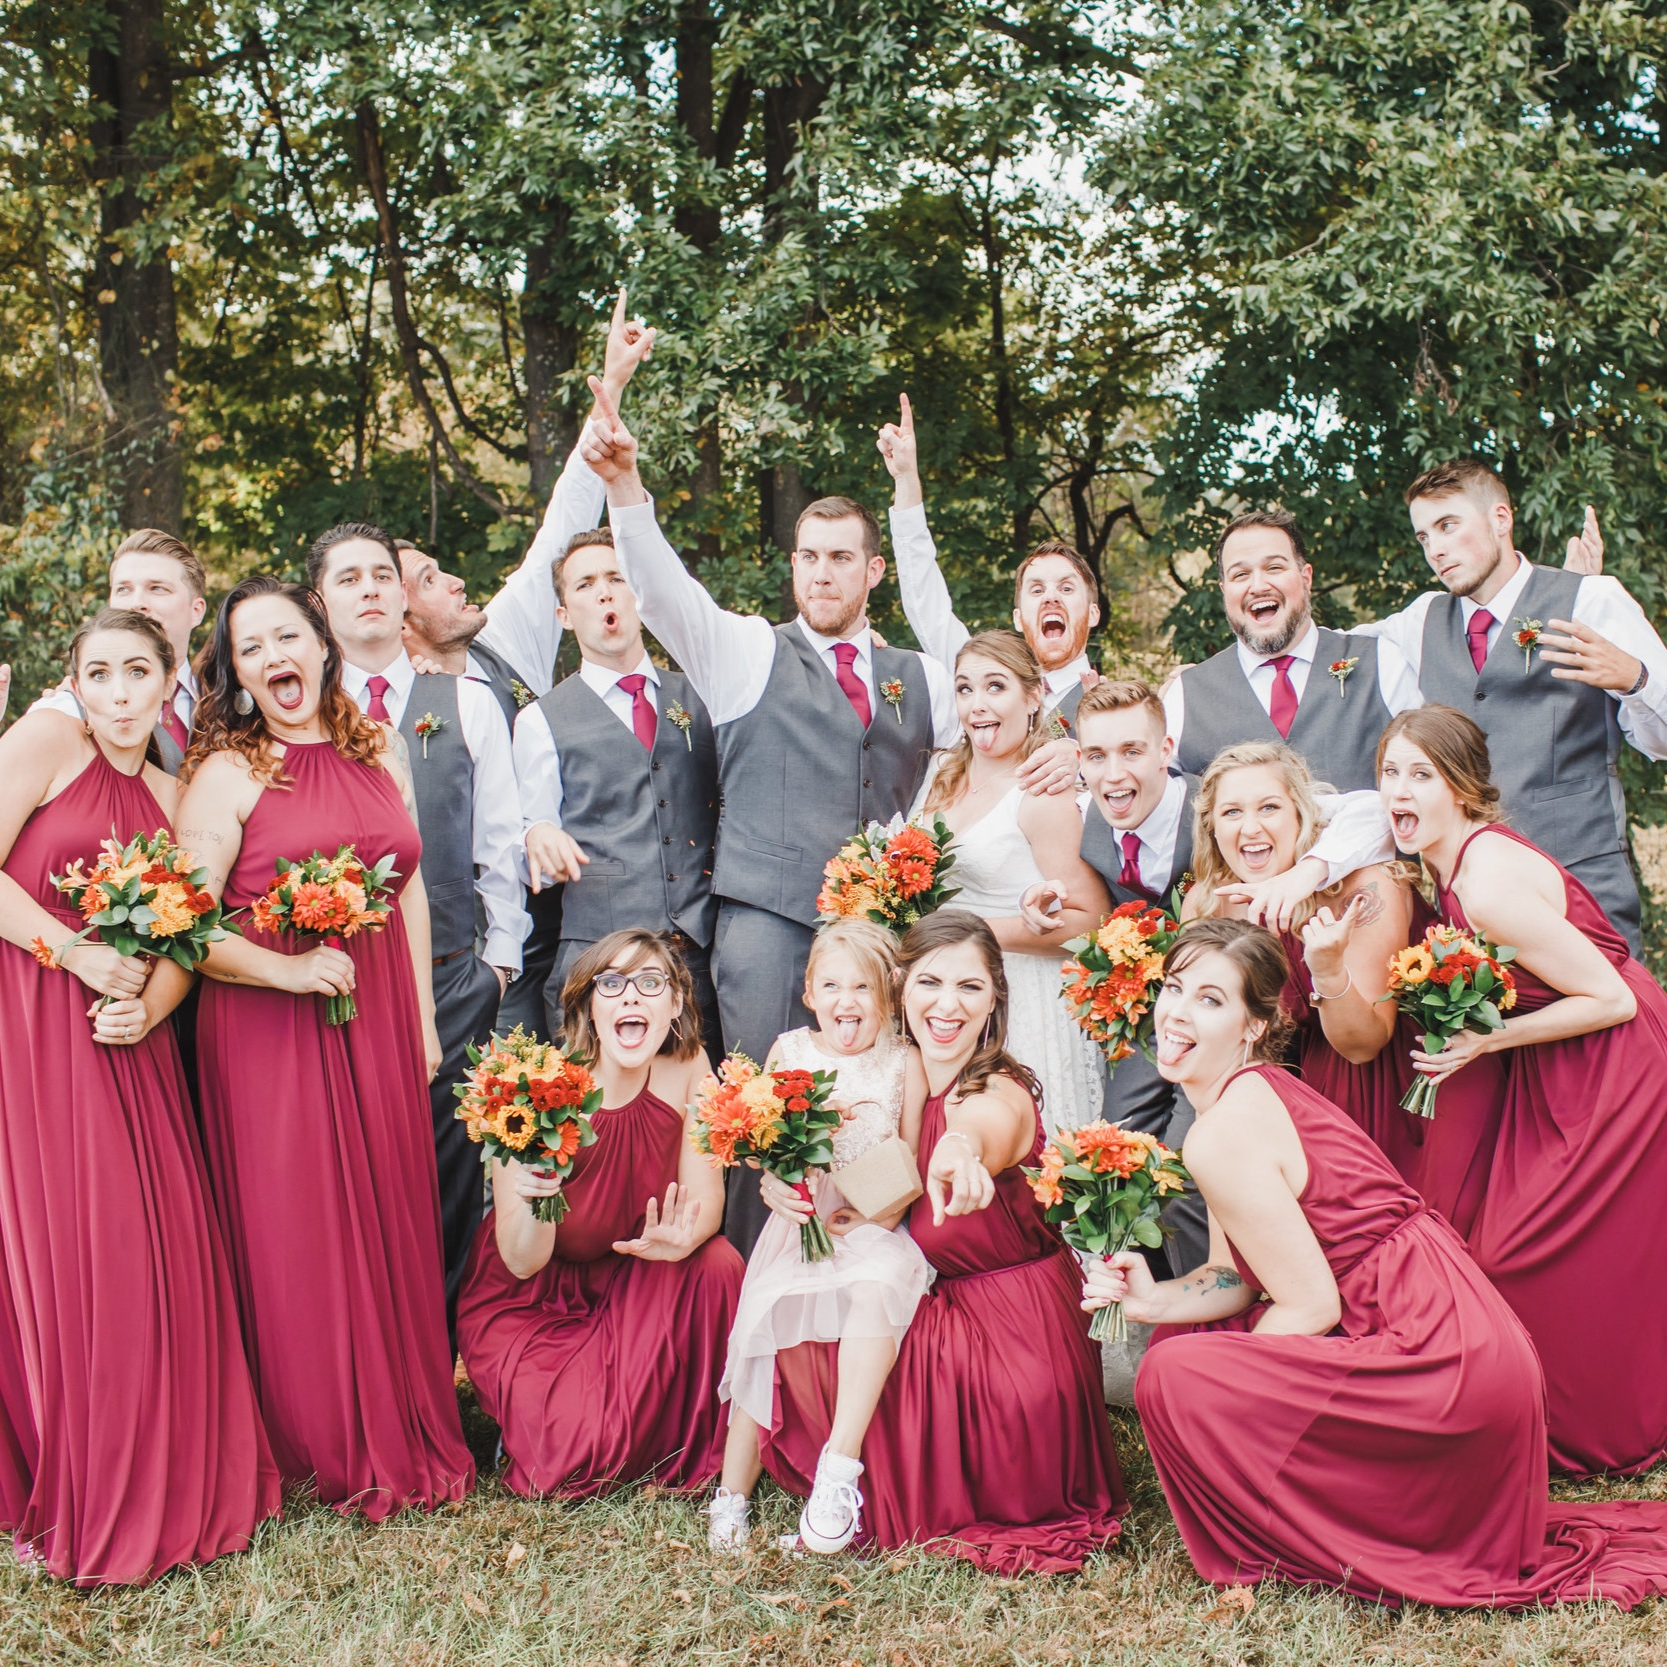 Fling - Virginia Wedding Photographer - Photography by Amy Nicole-249-21.jpg